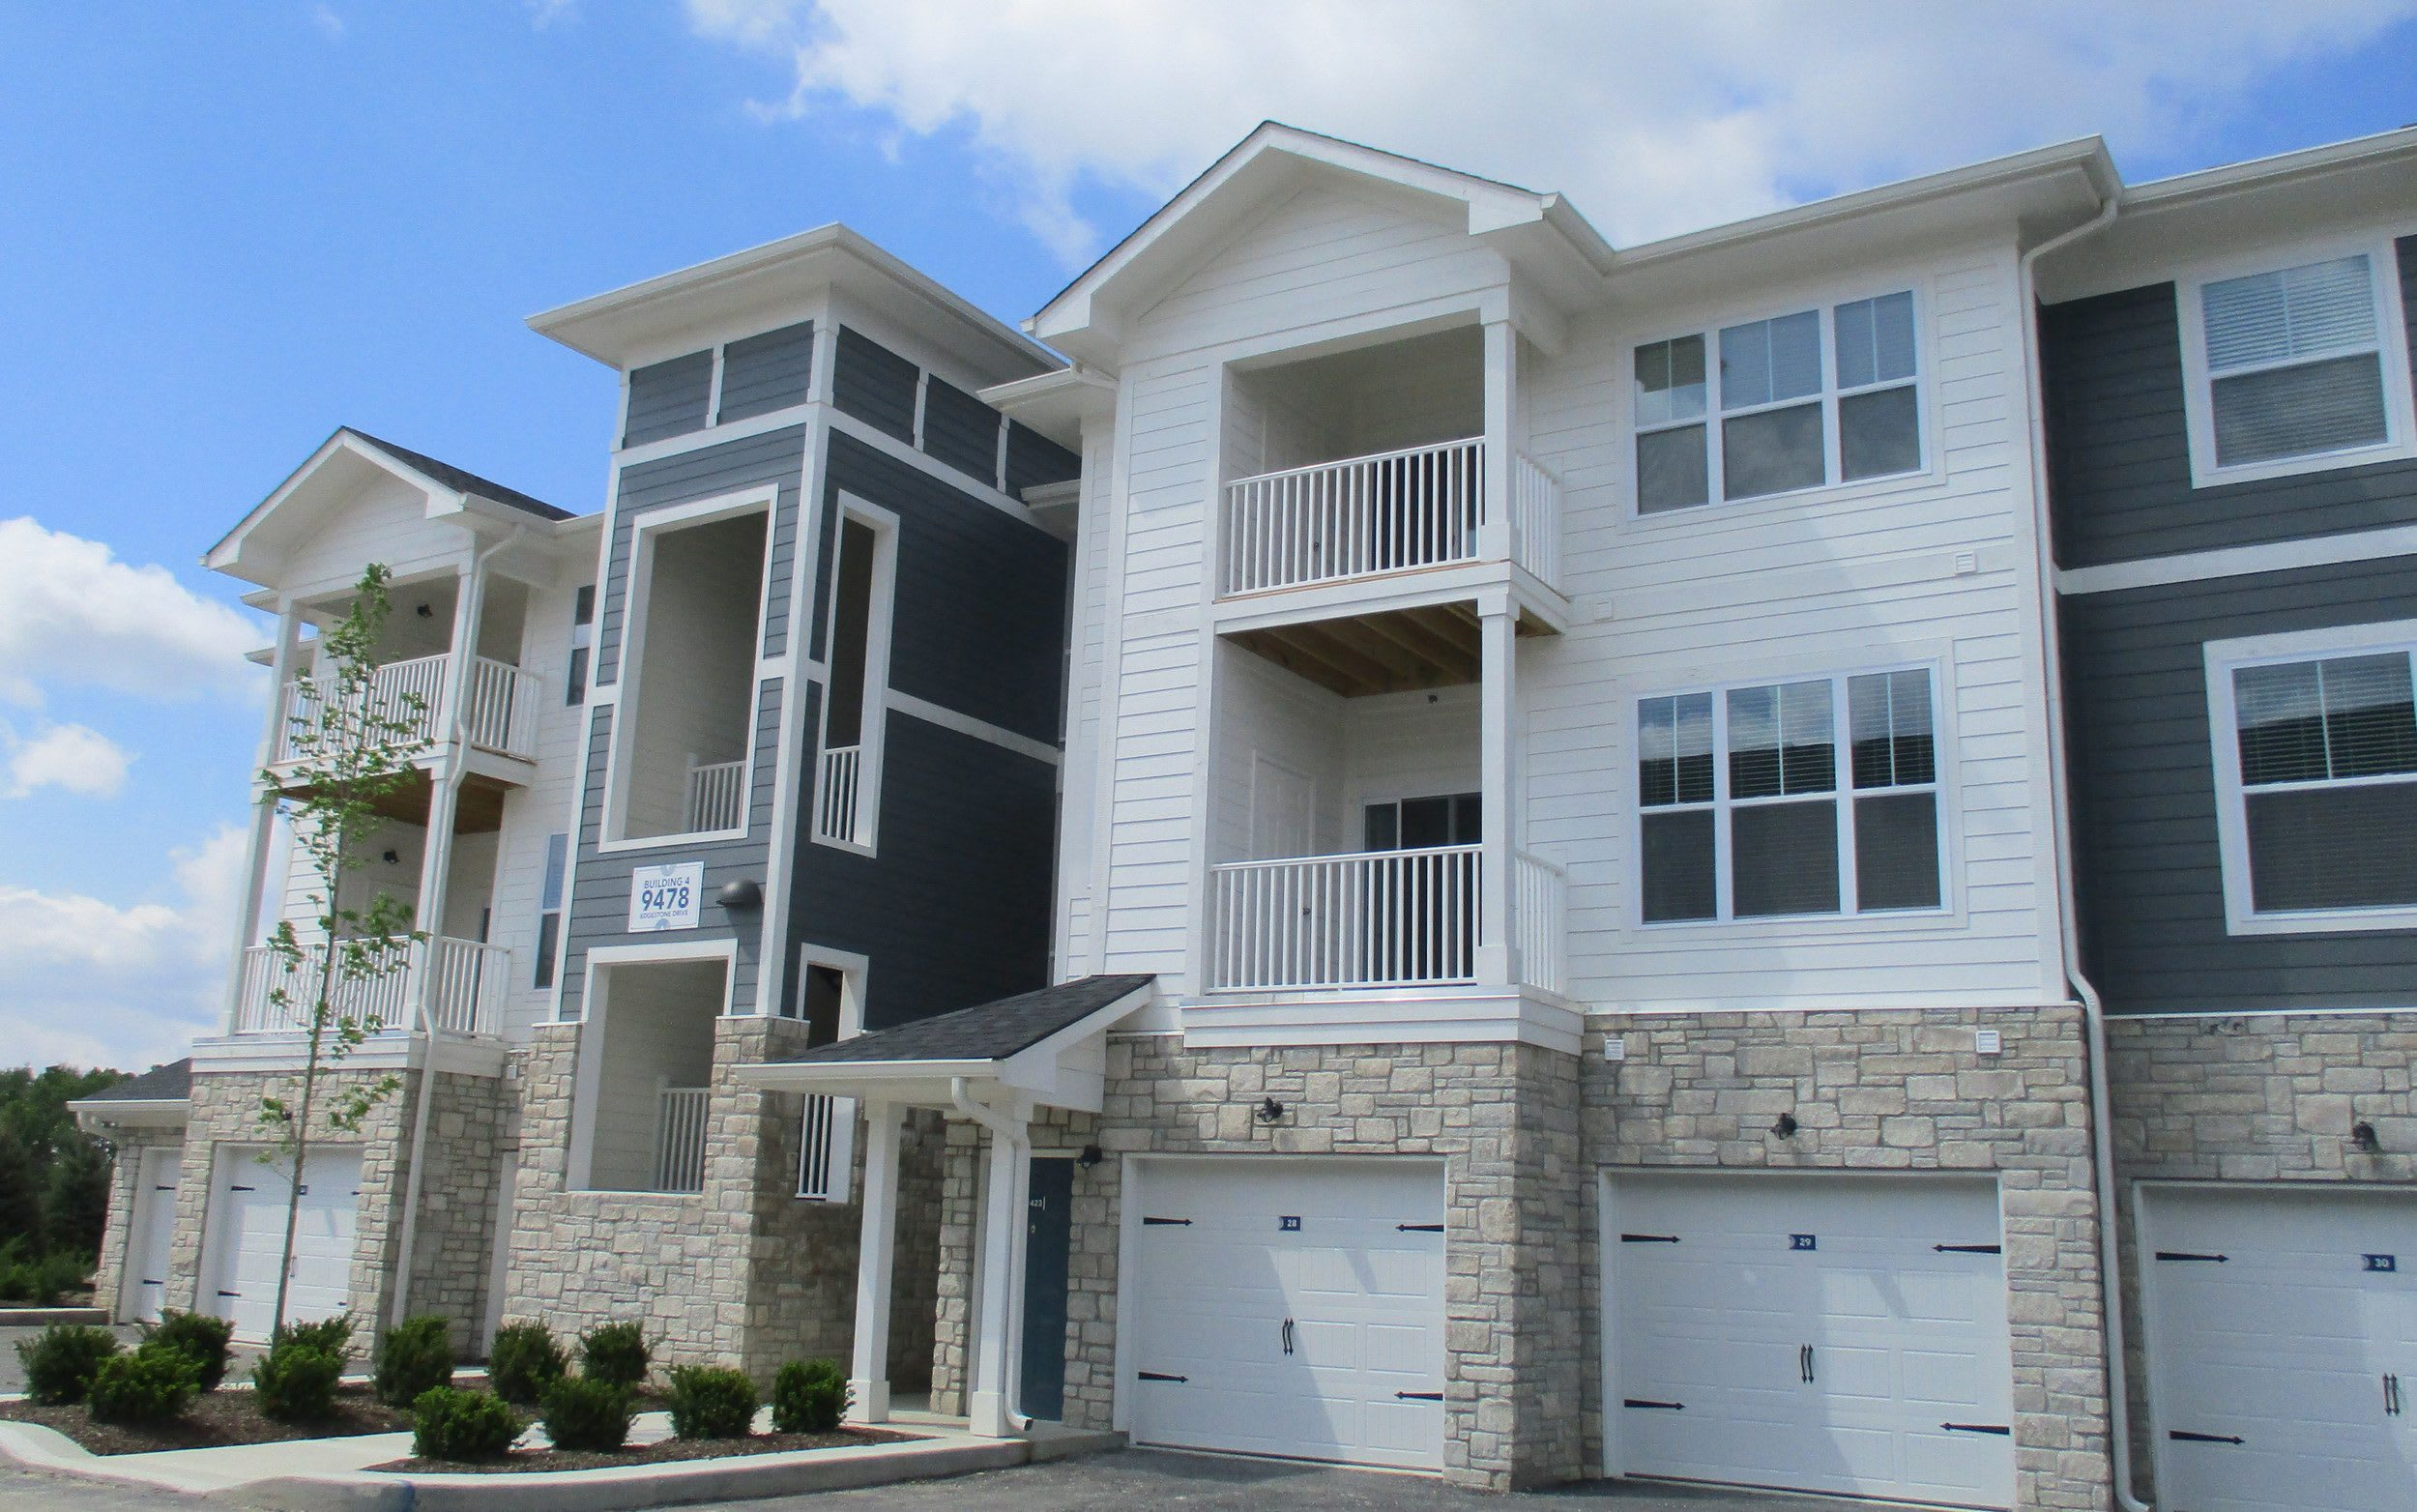 Apartments in Noblesville, IN